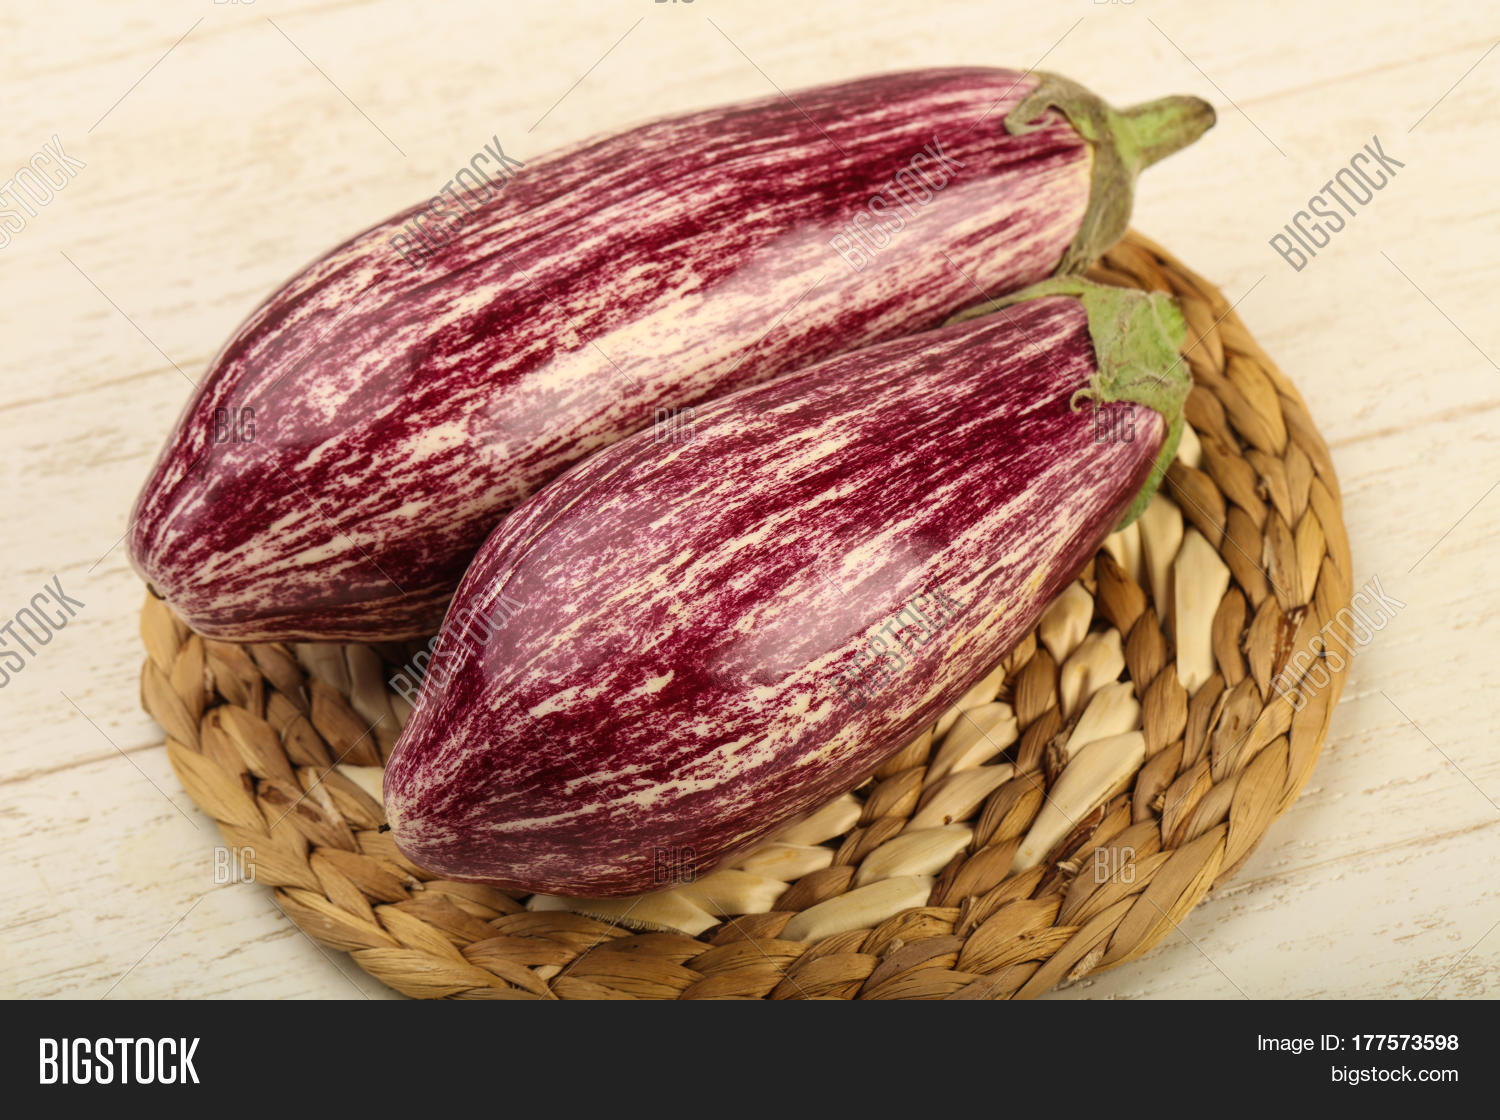 how to tell if eggplant is ripe